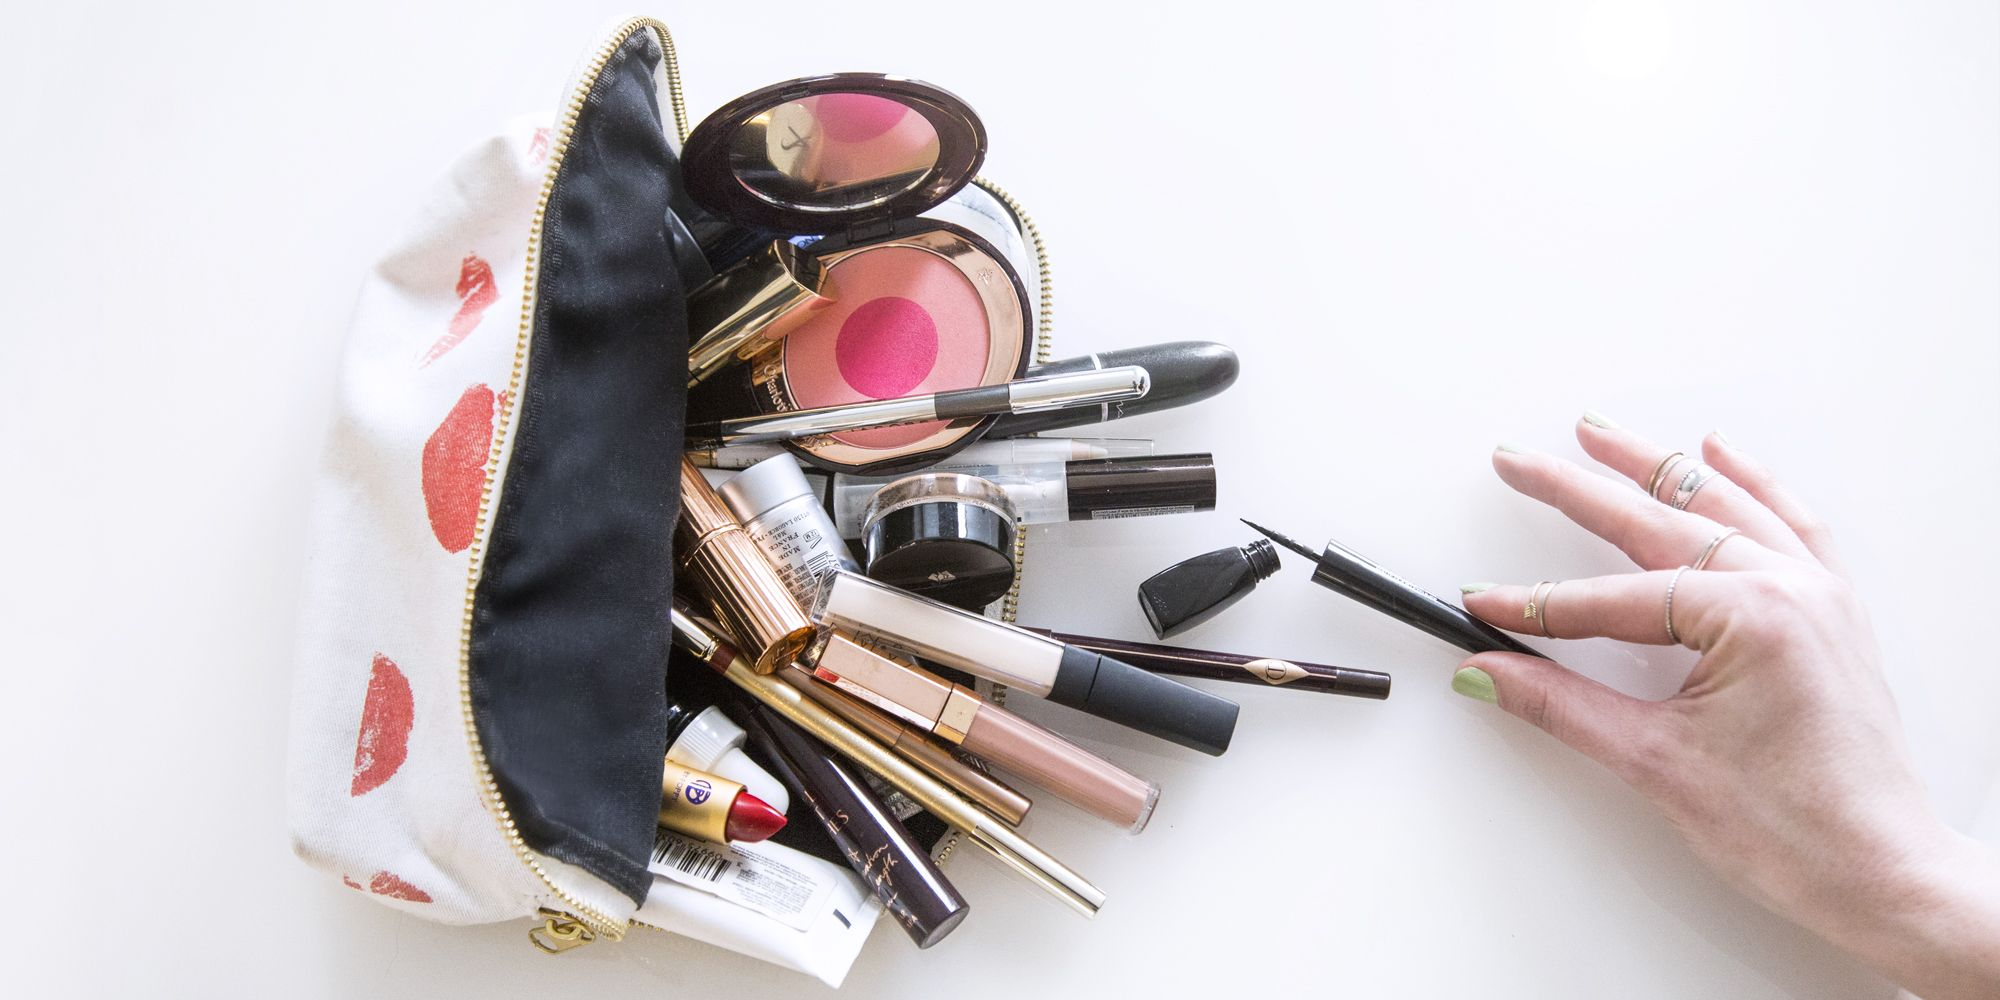 I Emptied My Makeup Bag for a Makeup Artist and This Is the Tough Love She Gave Me